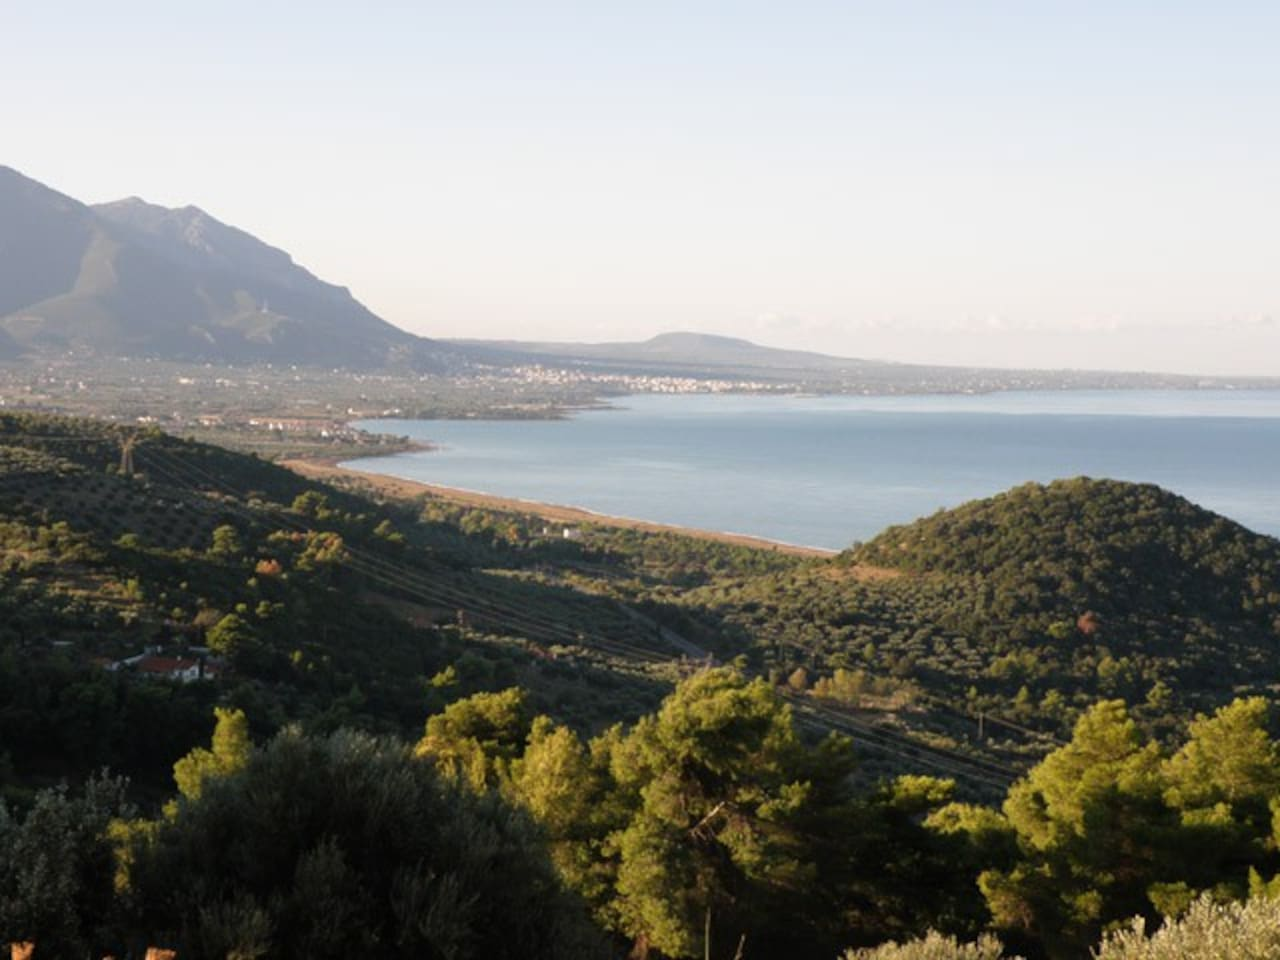 The Vounaki Hill in the foreground - Kyparissia bay and town in the background